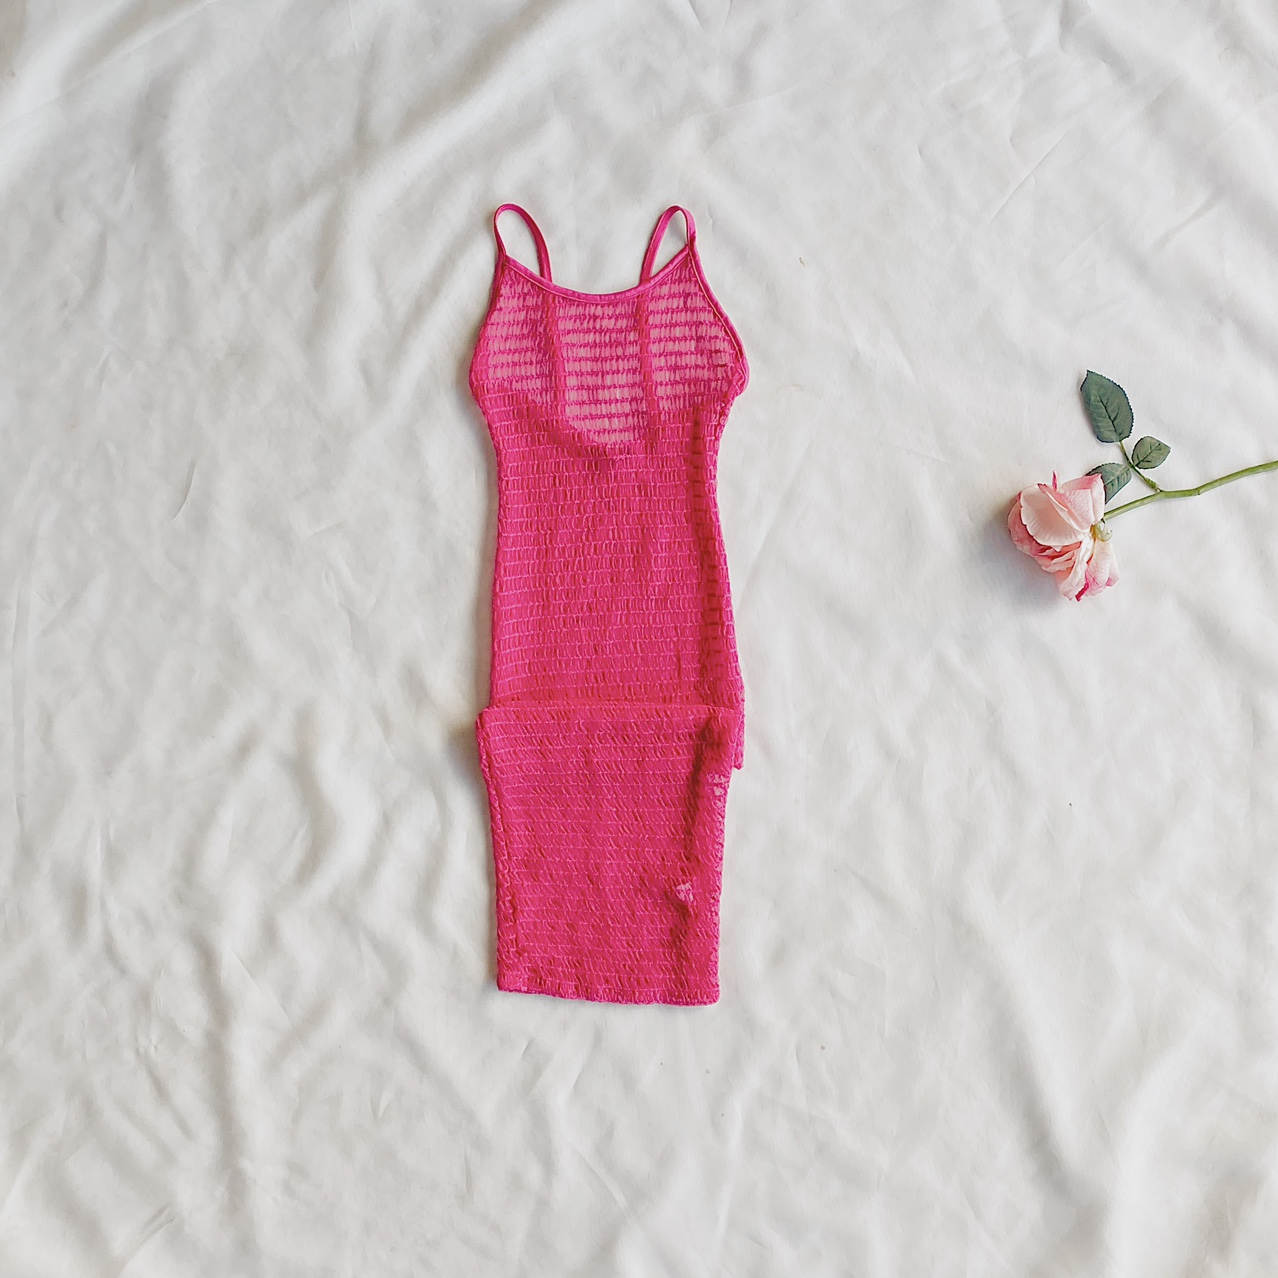 Product Image 1 - Pink See-Through Dress Bust 32/33 inches